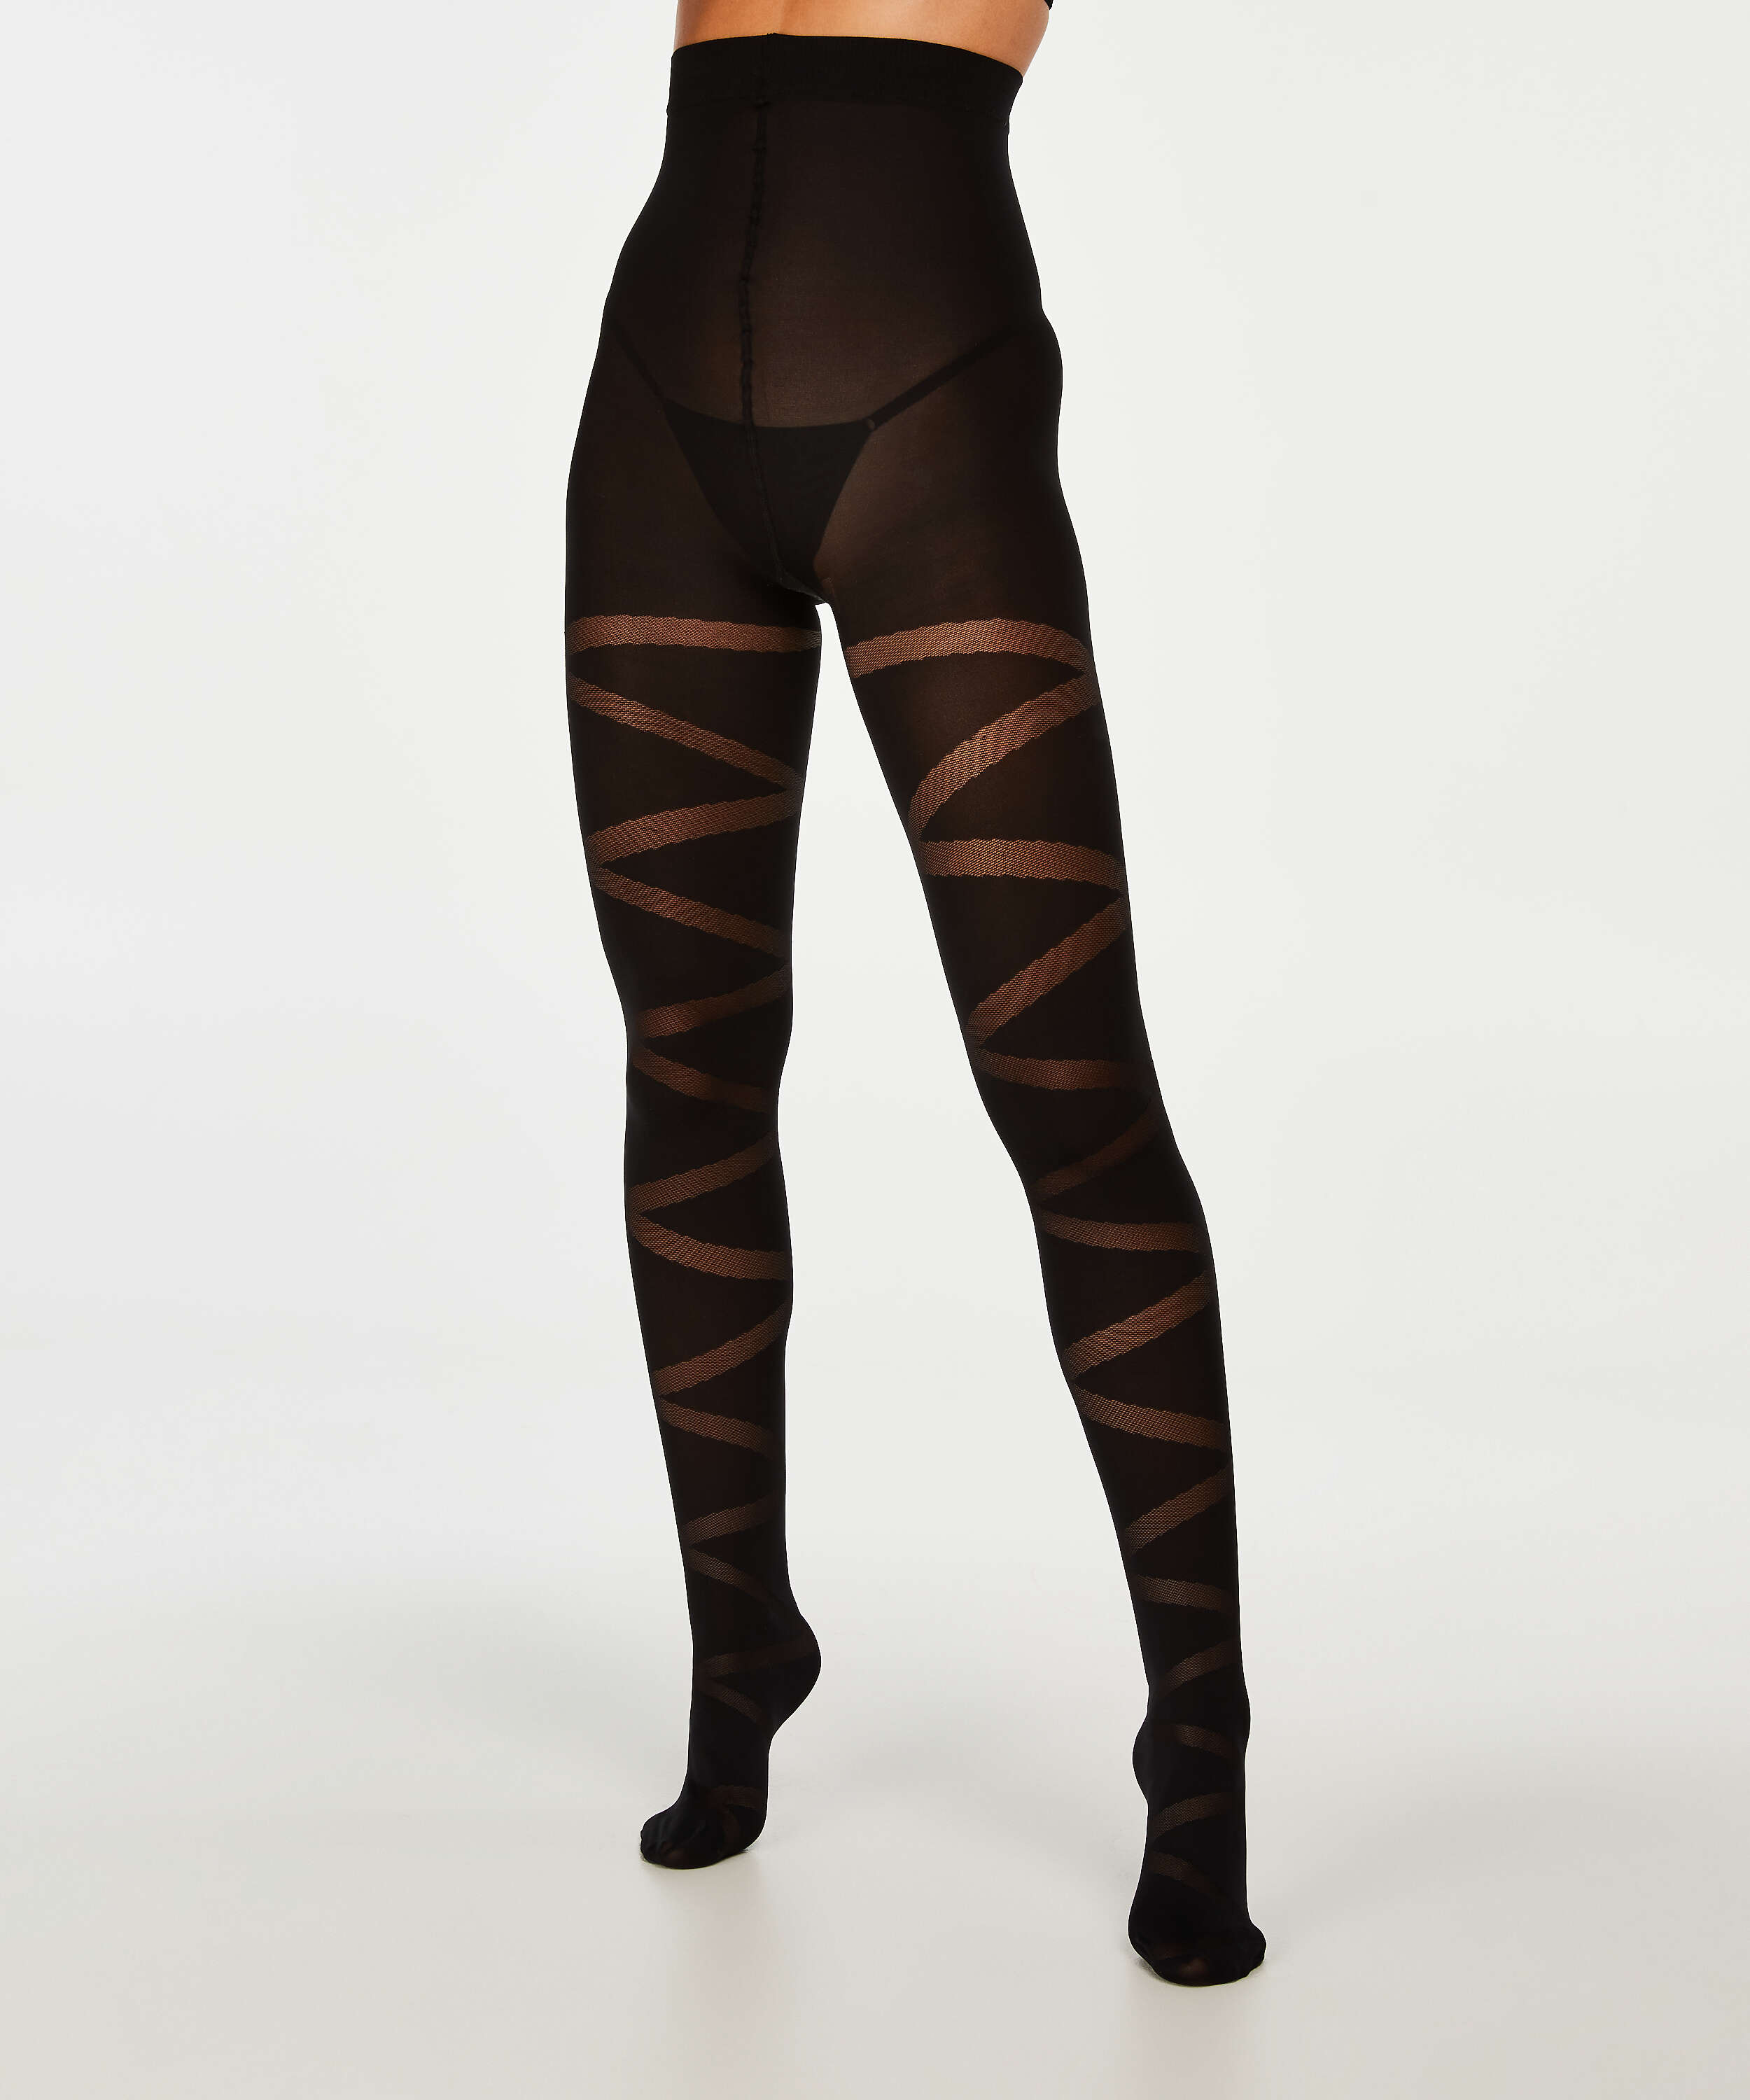 40 Denier Reversed Gladiator tights, Svart, main